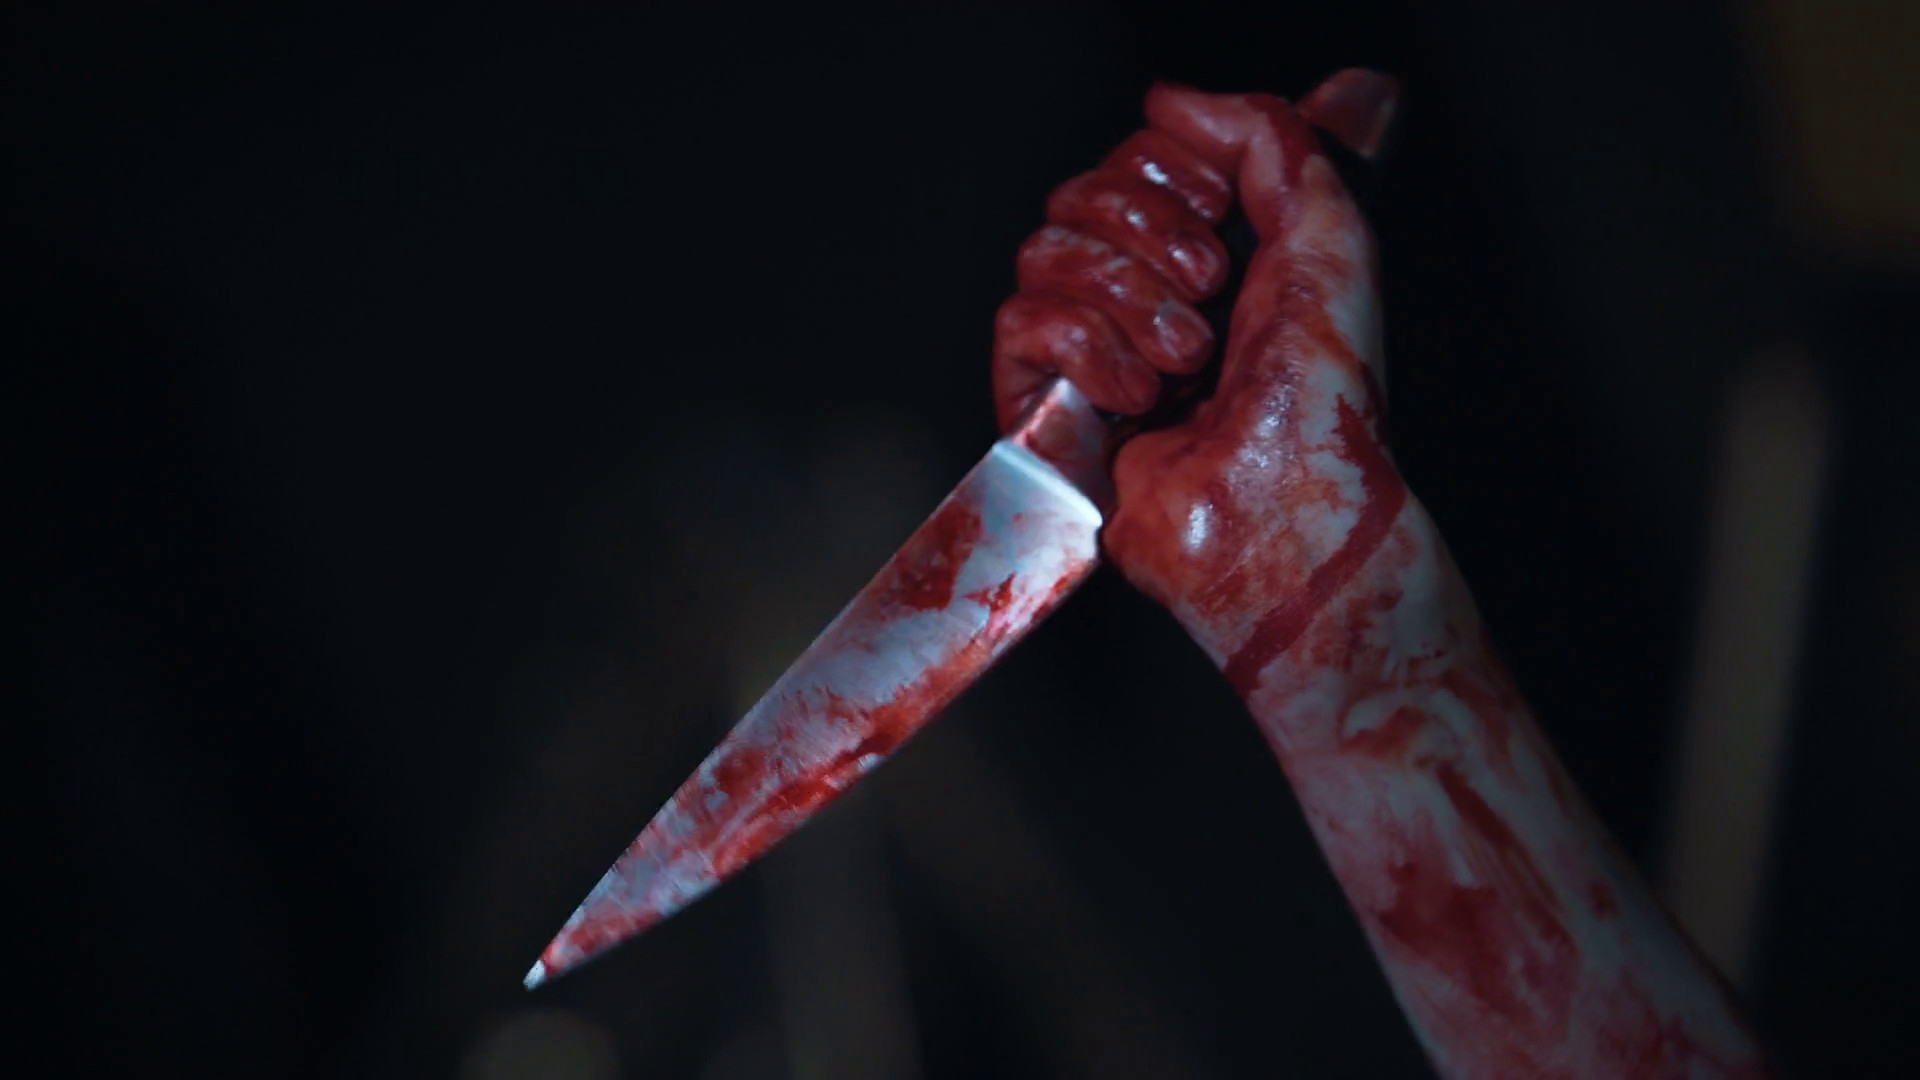 Mad serial killer gripping knife covered in blood, hands of ruthless maniac  Stock Video Footage – VideoBlocks